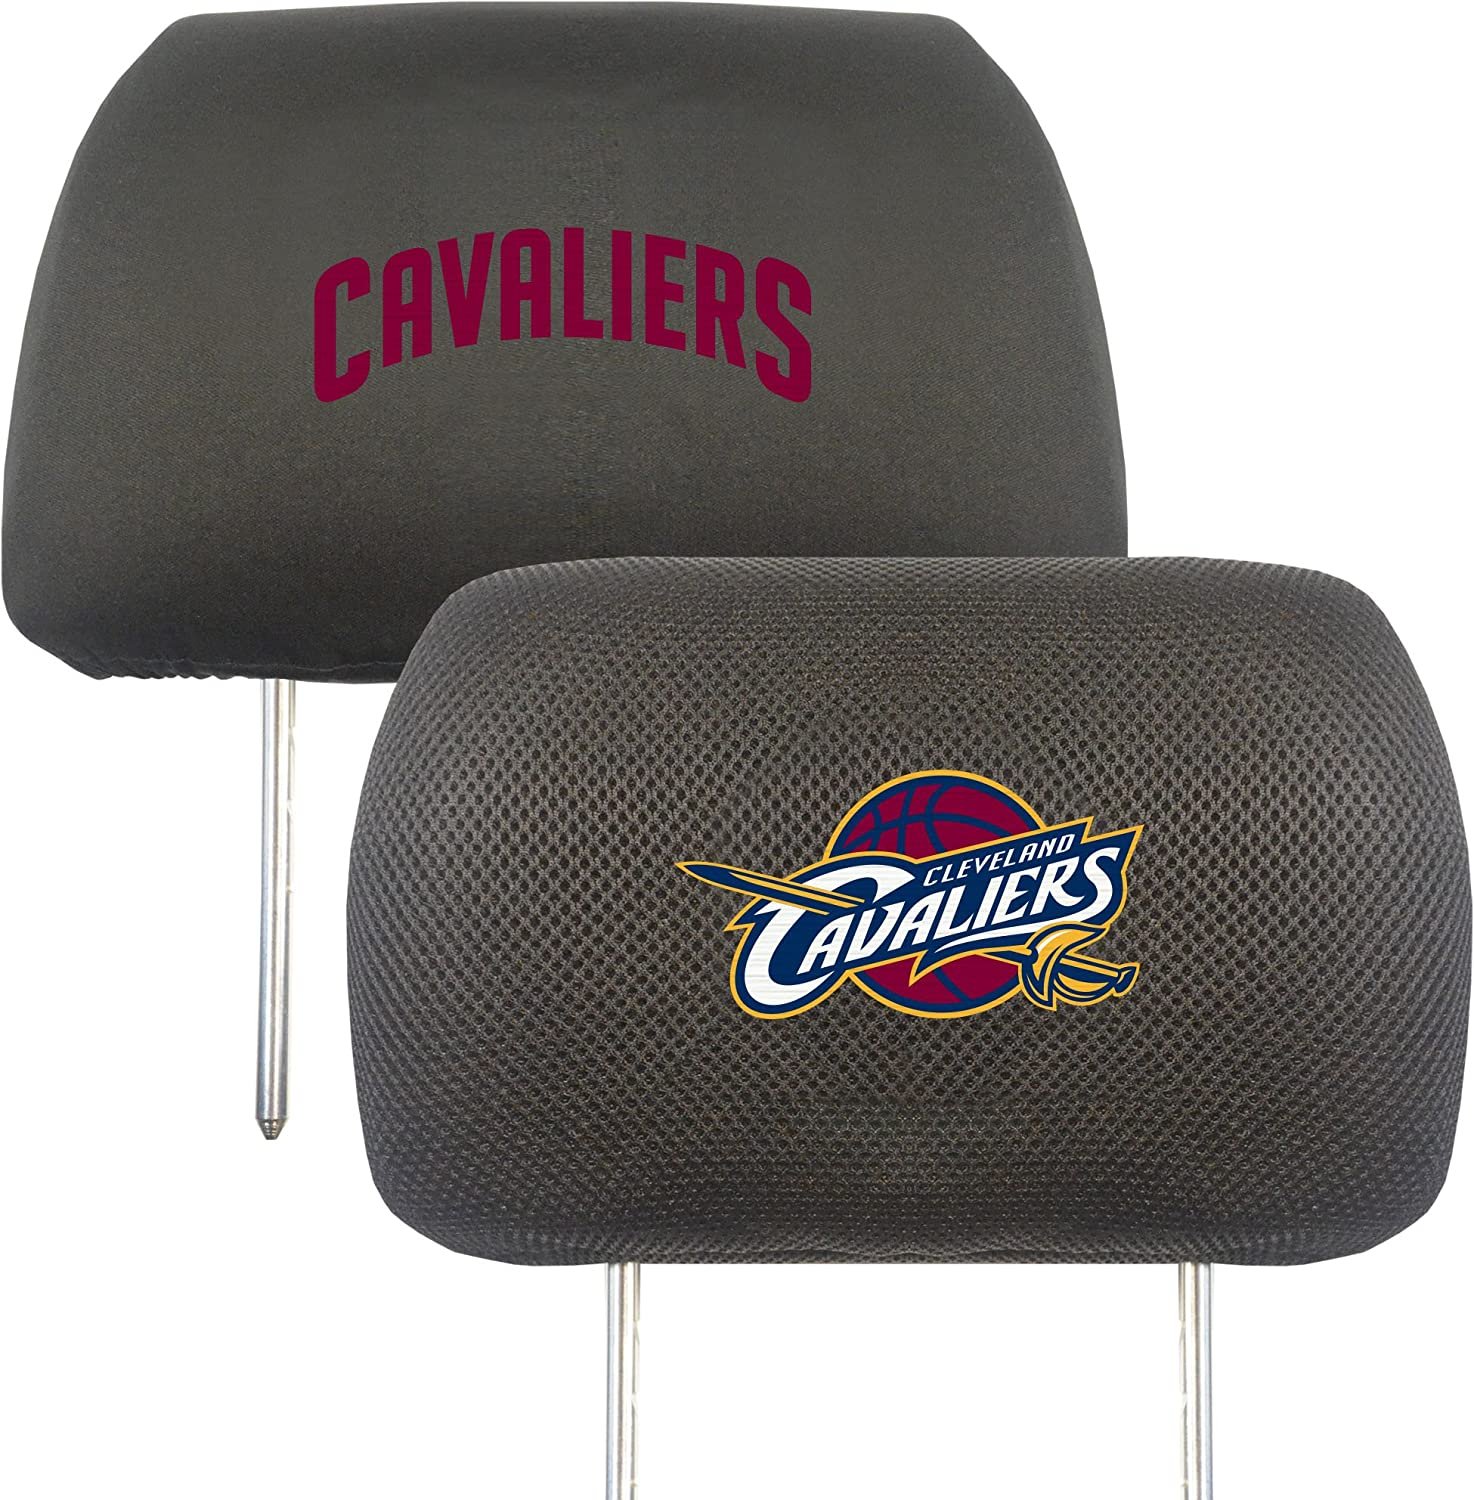 NBA Cleveland Cavaliers Head Rest Cover 10 x 13//Small Black